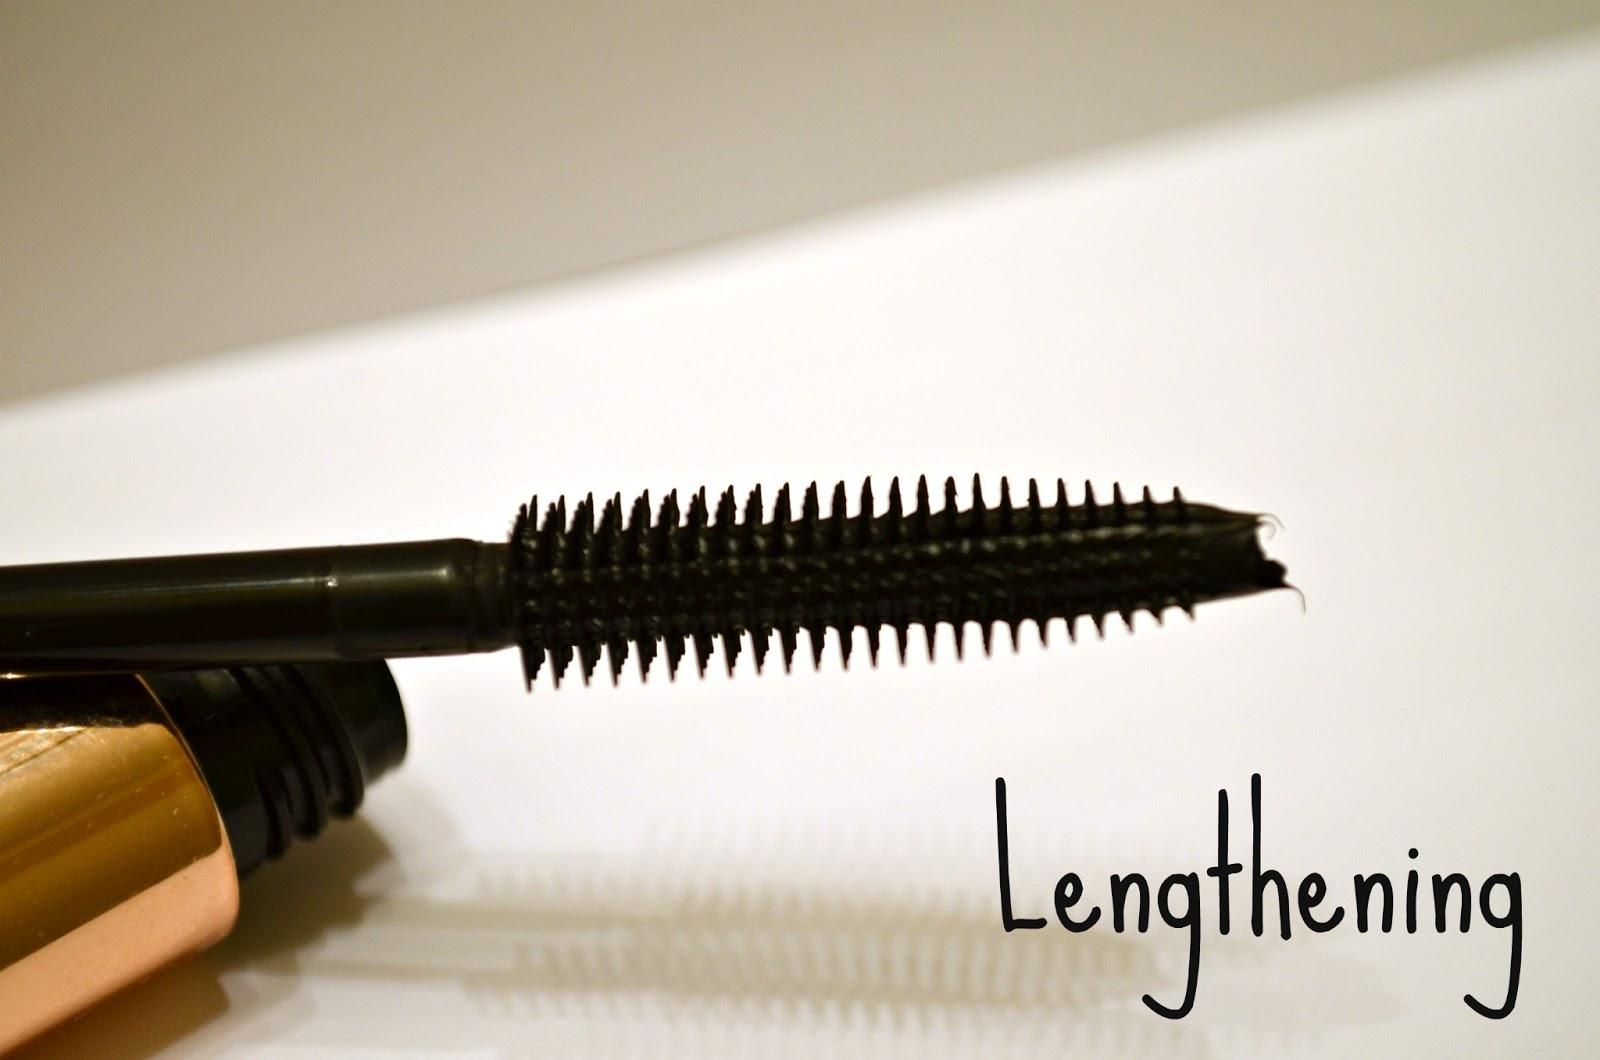 Flower zoom in ultimate mascara review the budget beauty blog flower zoom in ultimate mascara review izmirmasajfo